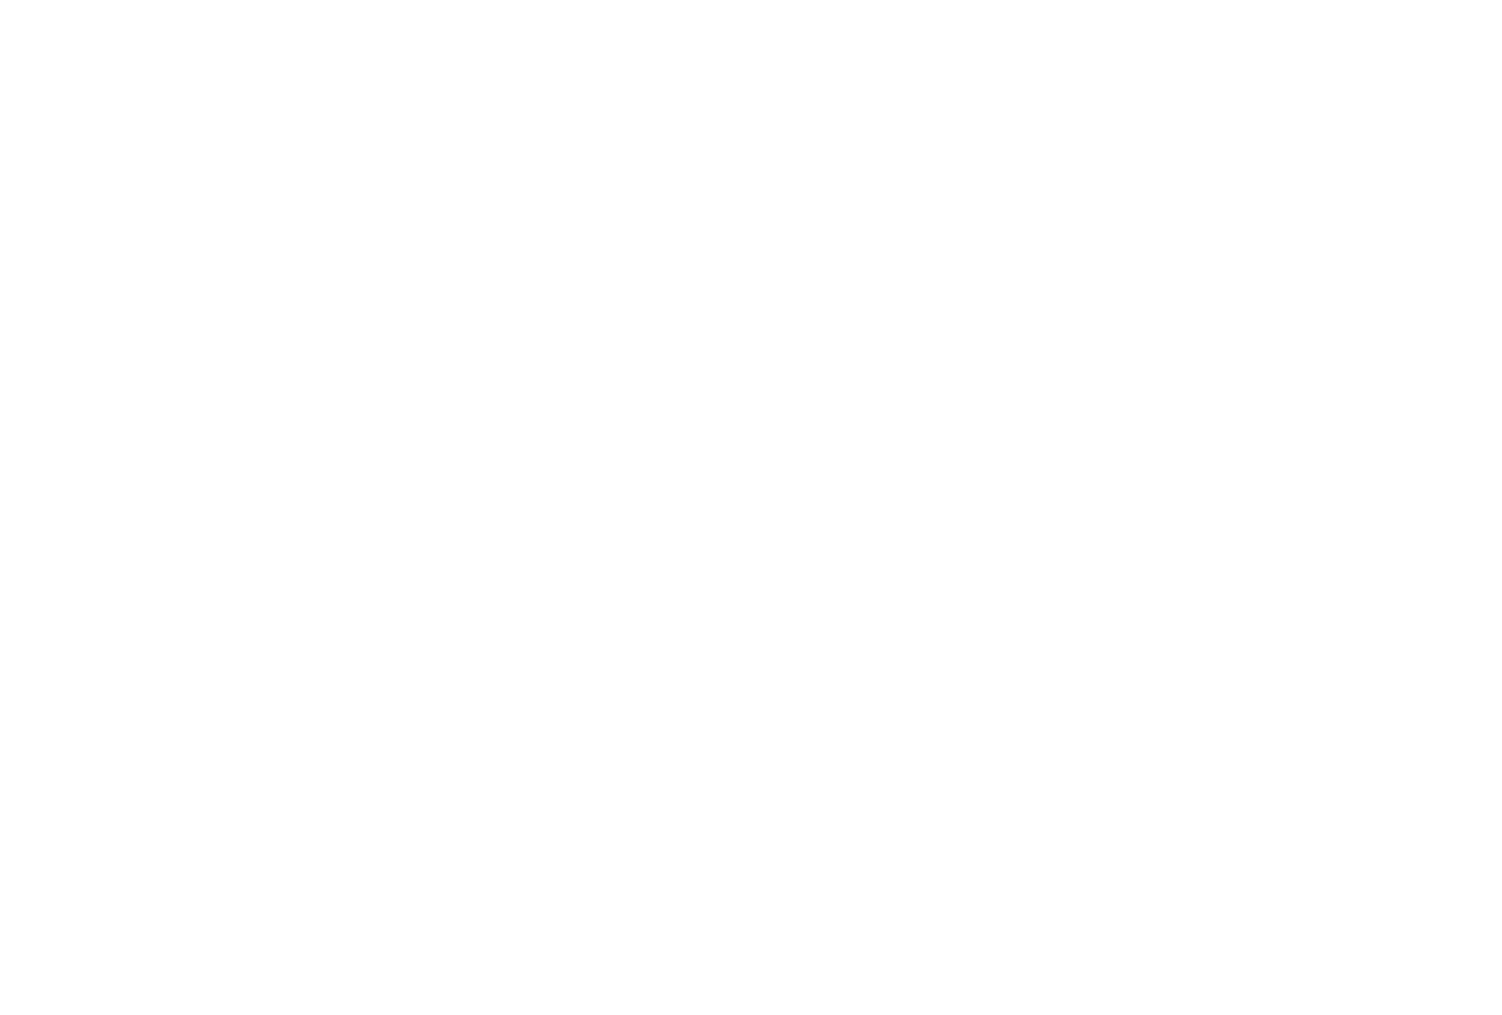 two spatulas crossed